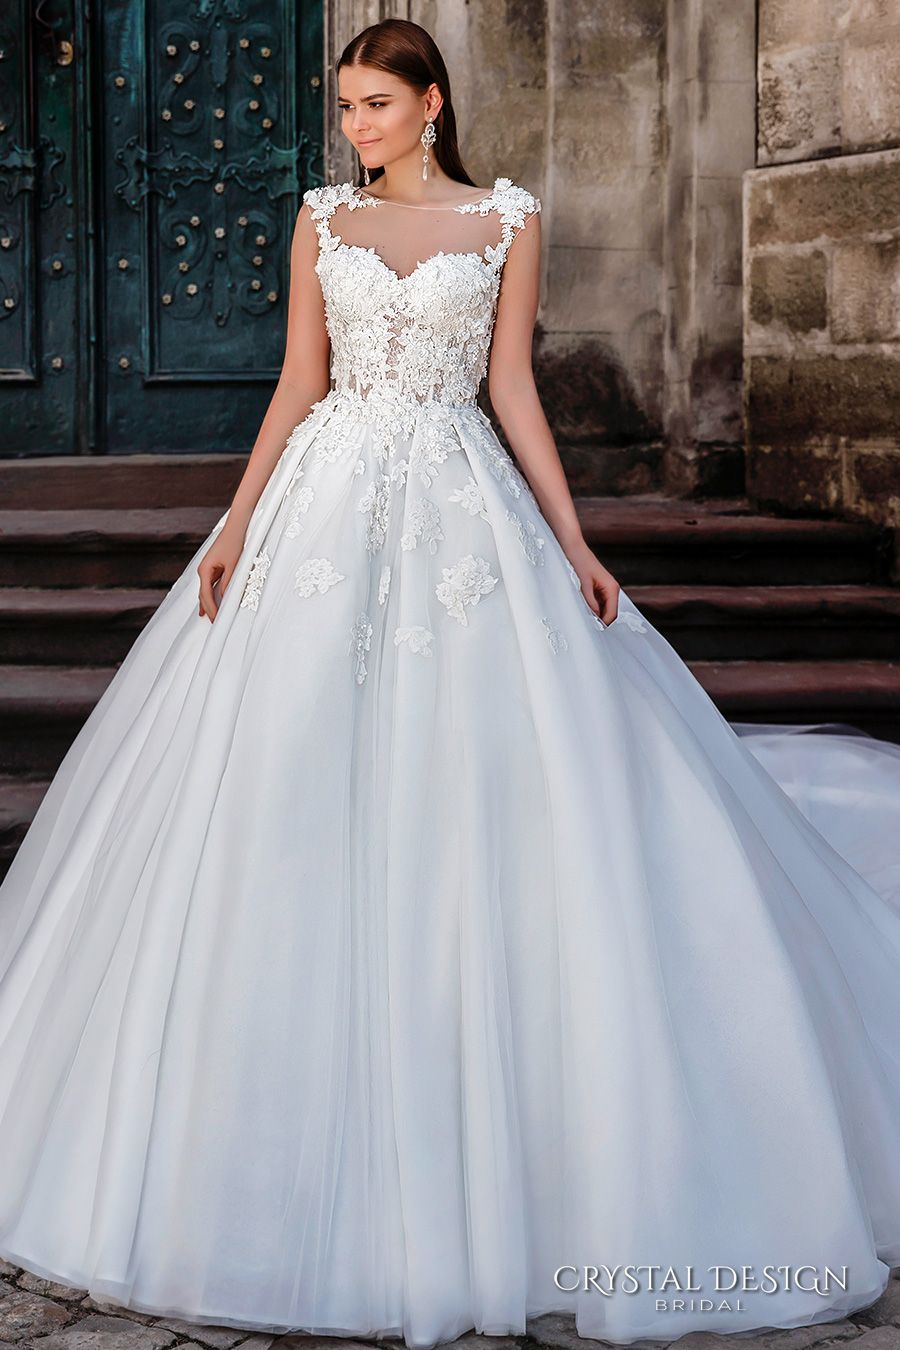 Crystal Design 2016 Wedding Dresses | Ball gowns, Illusions and Bodice